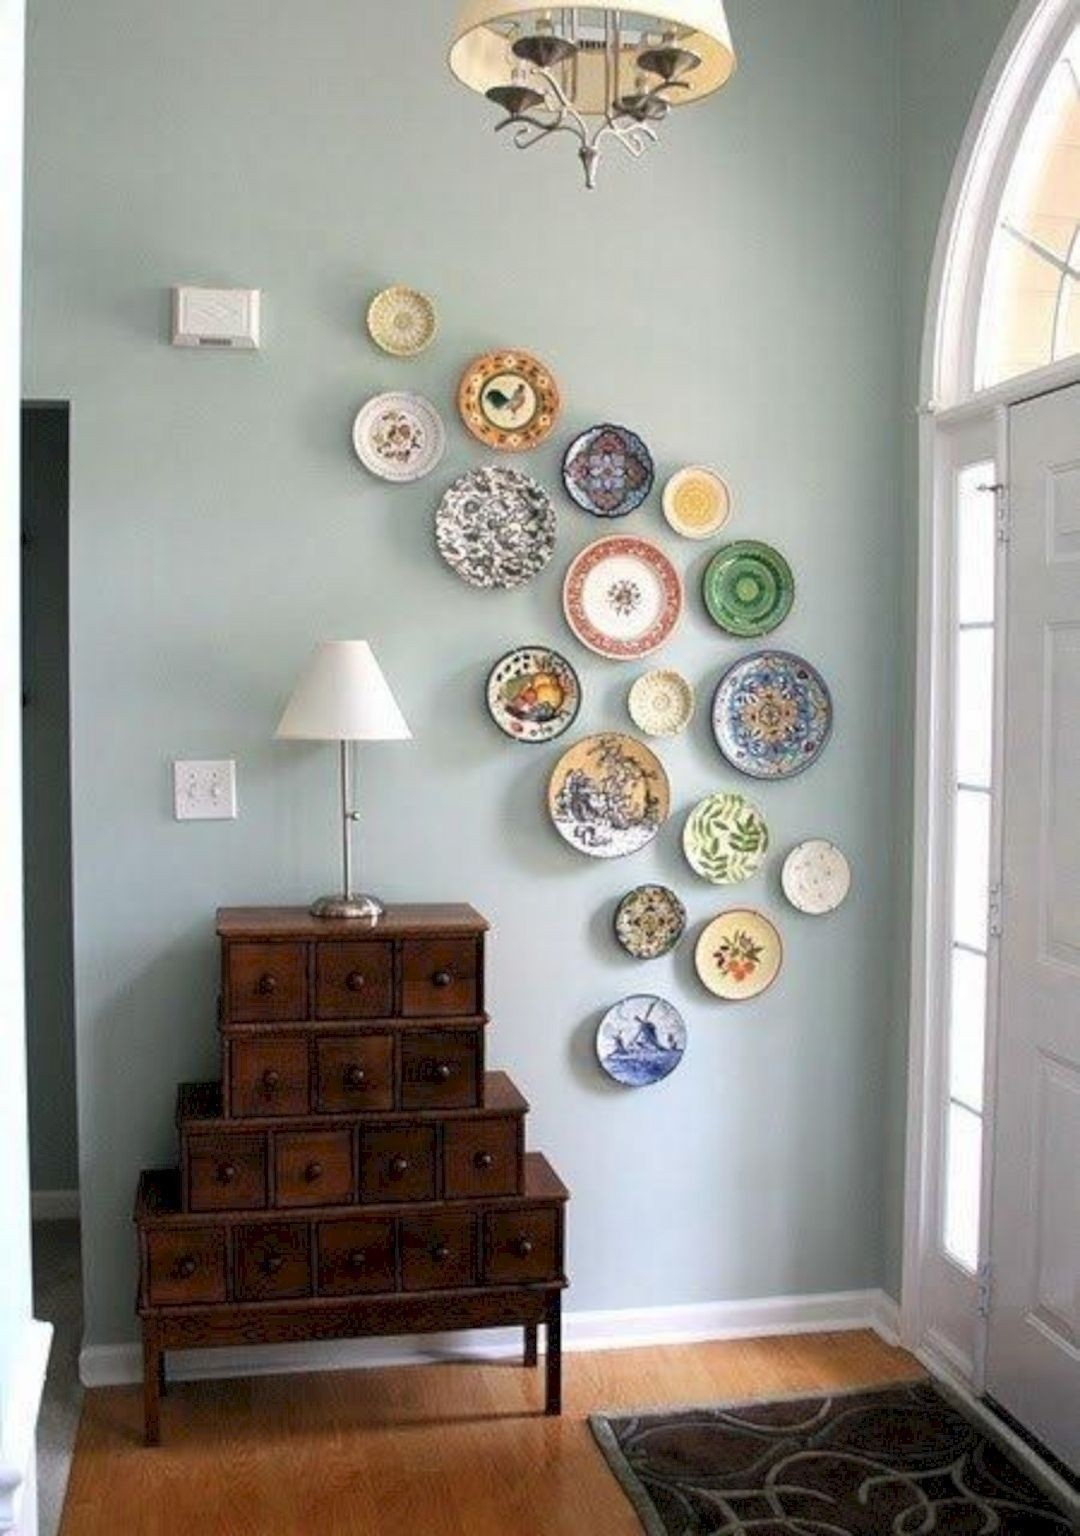 Decorative plates for wall hanging : decorative plates for wall hanging - pezcame.com